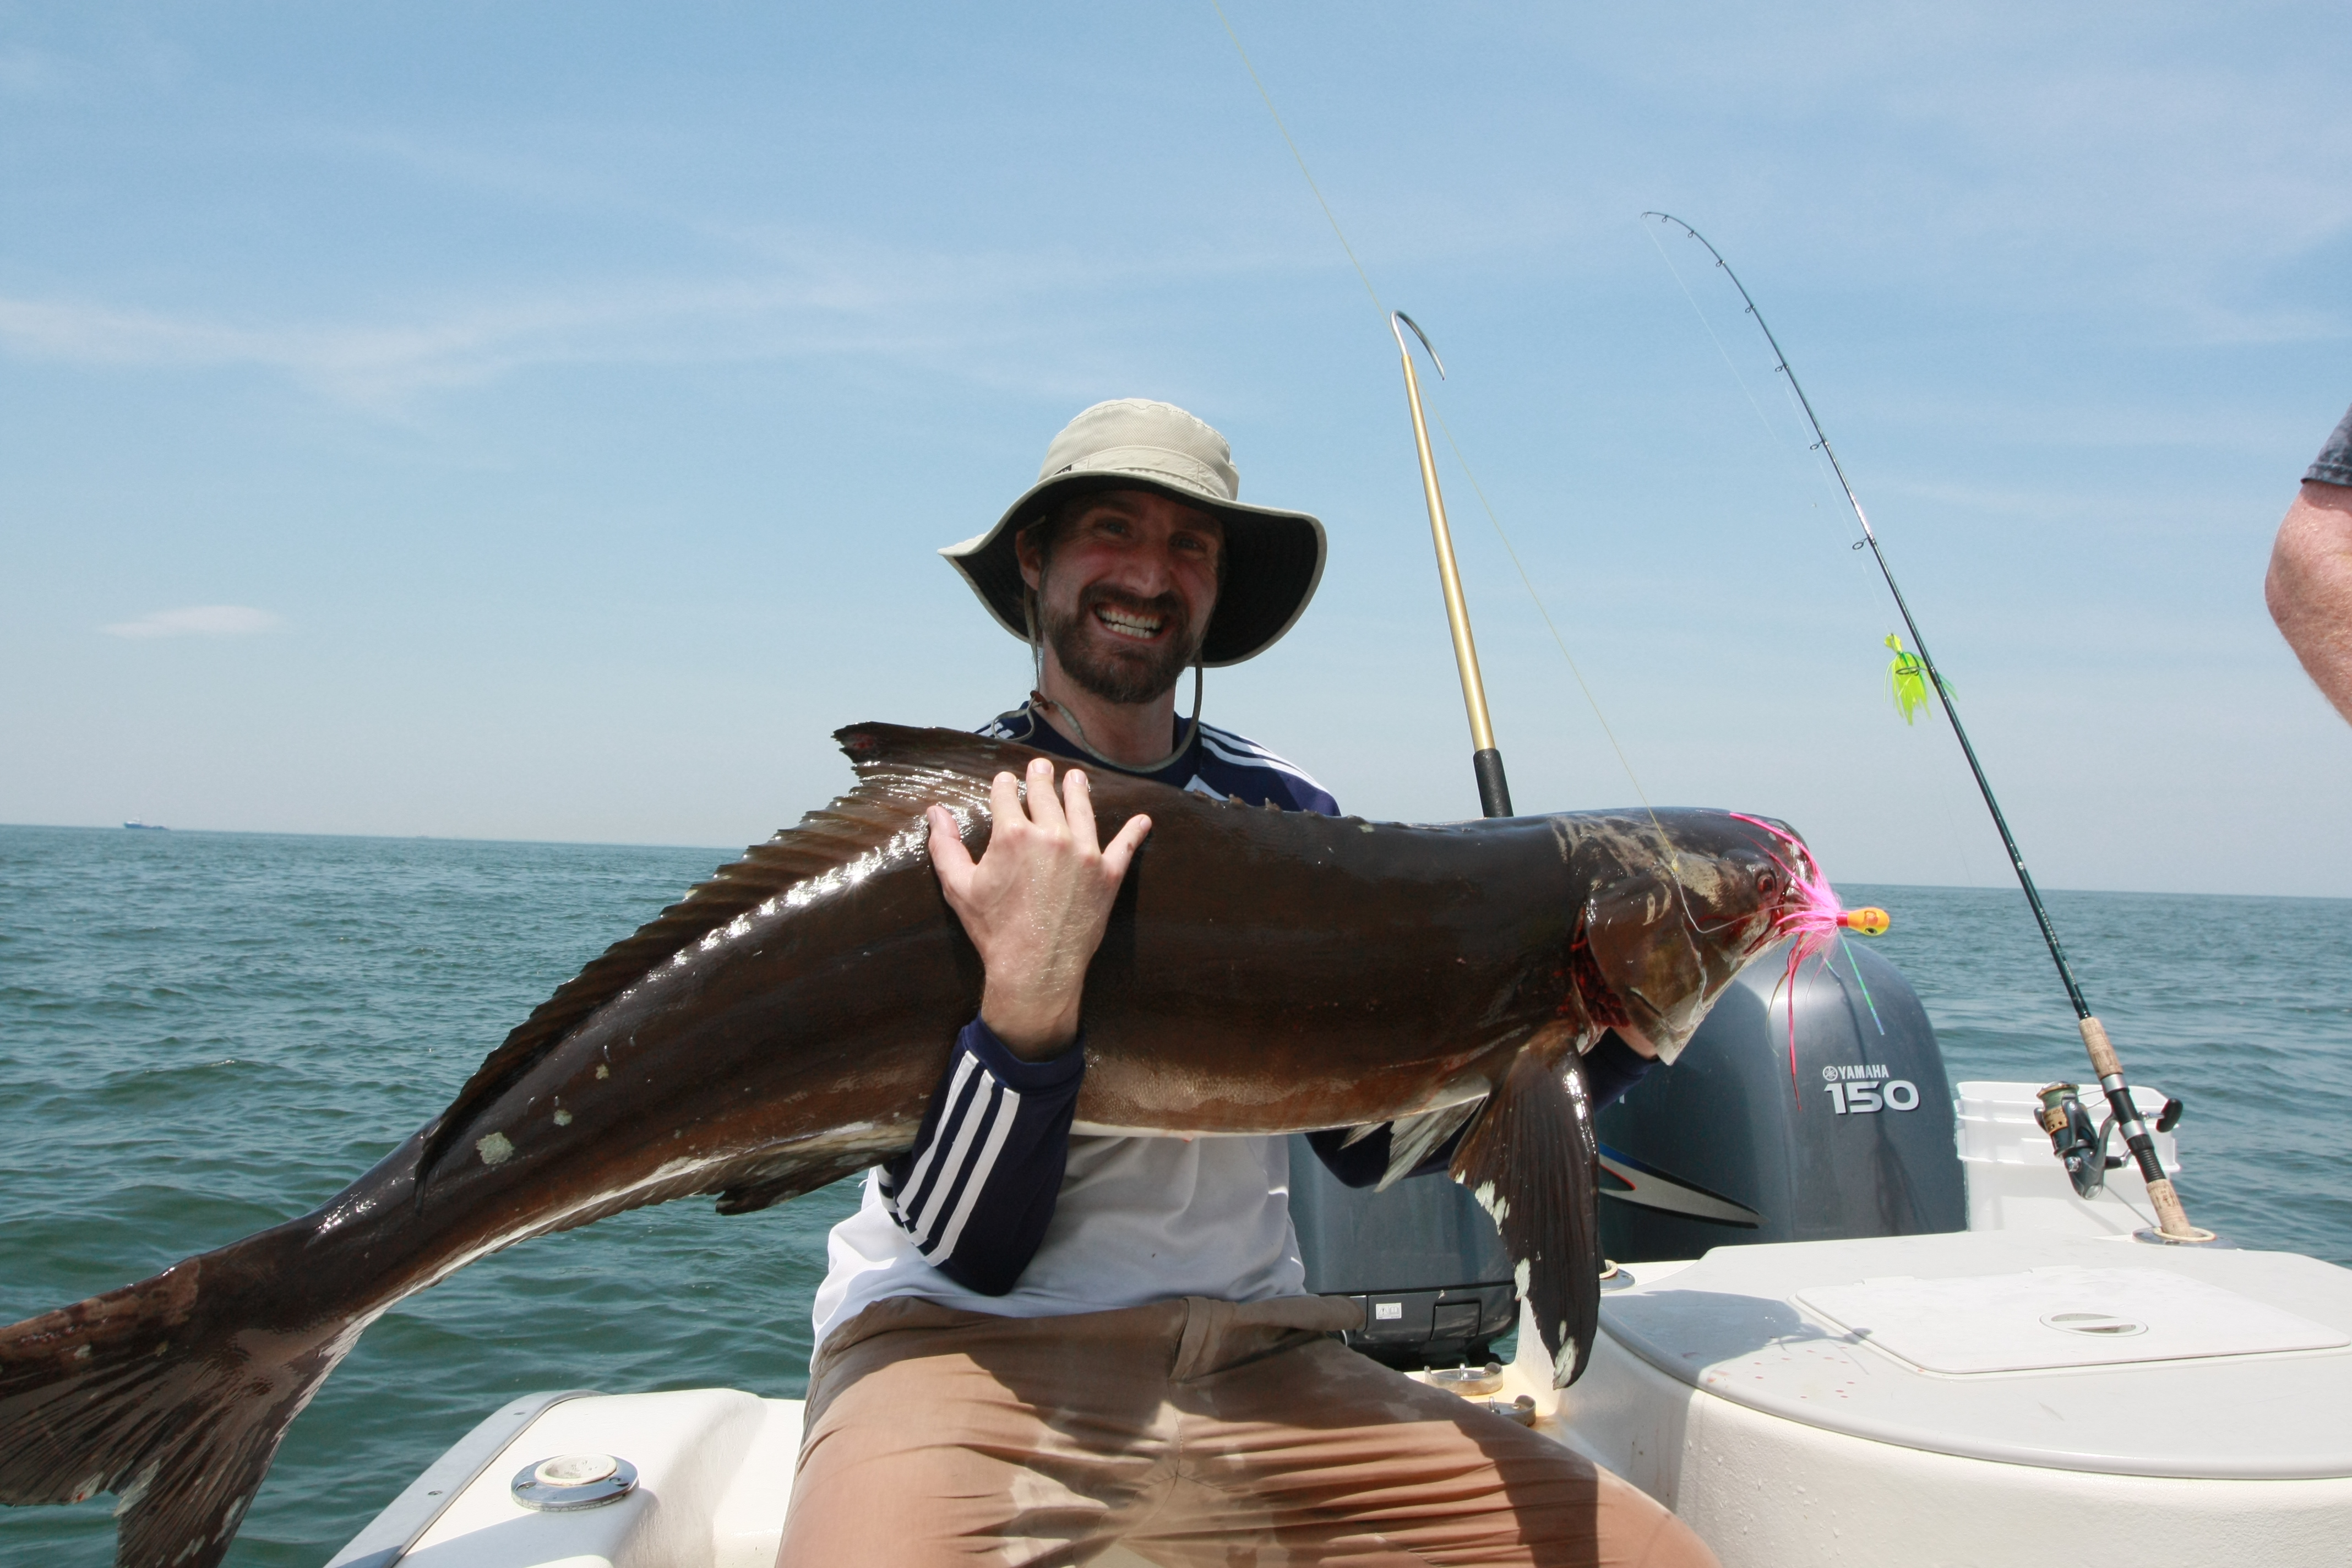 An Excited Fisherman Grasps A Huge Cobia On Fishing Trip